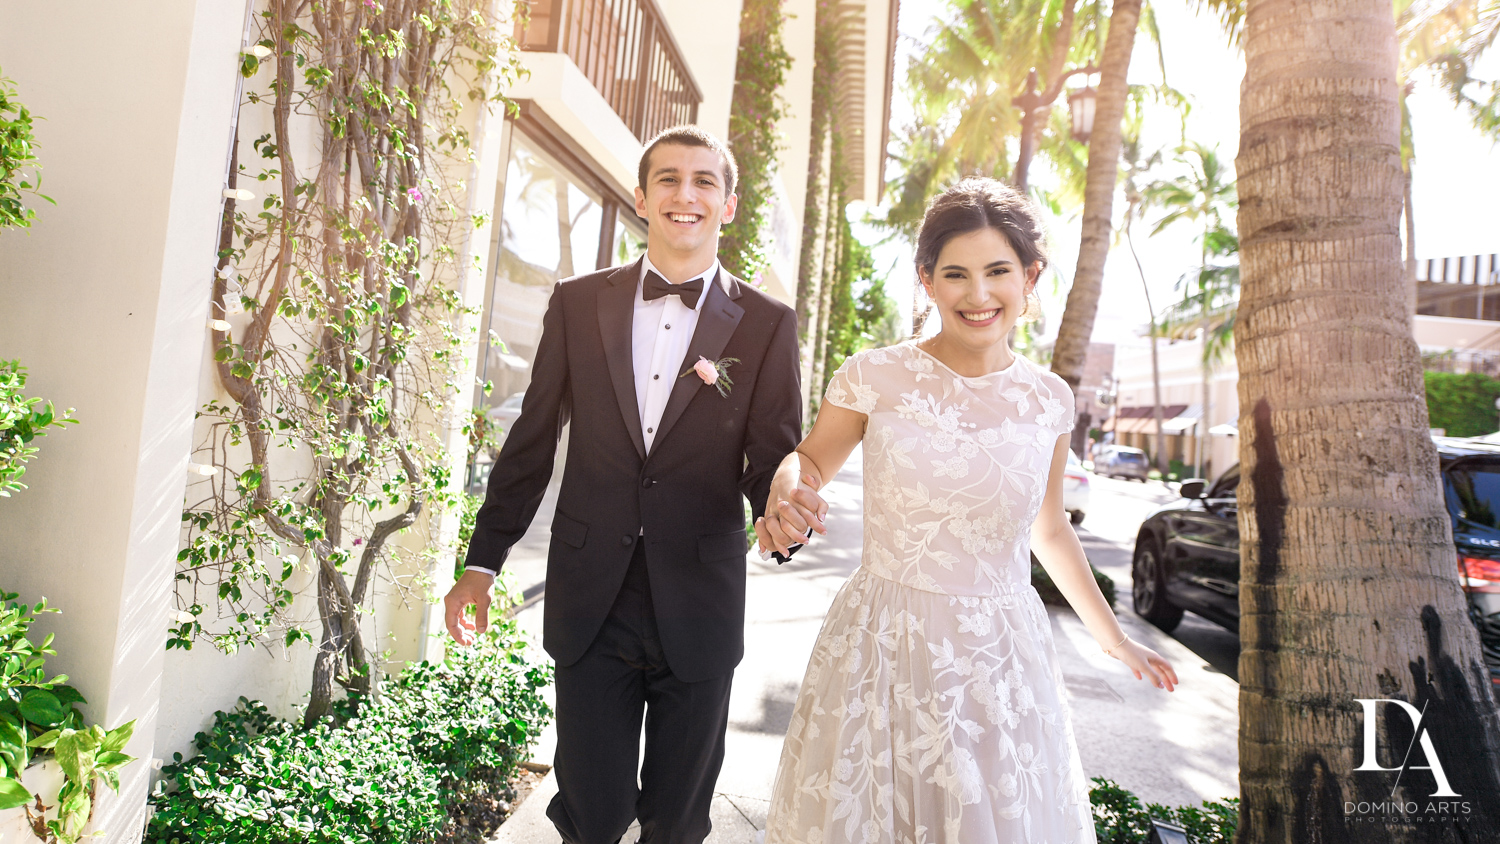 fun bride and groom at Luxury Summer Wedding at The Colony Hotel Palm Beach by Domino Arts Photography